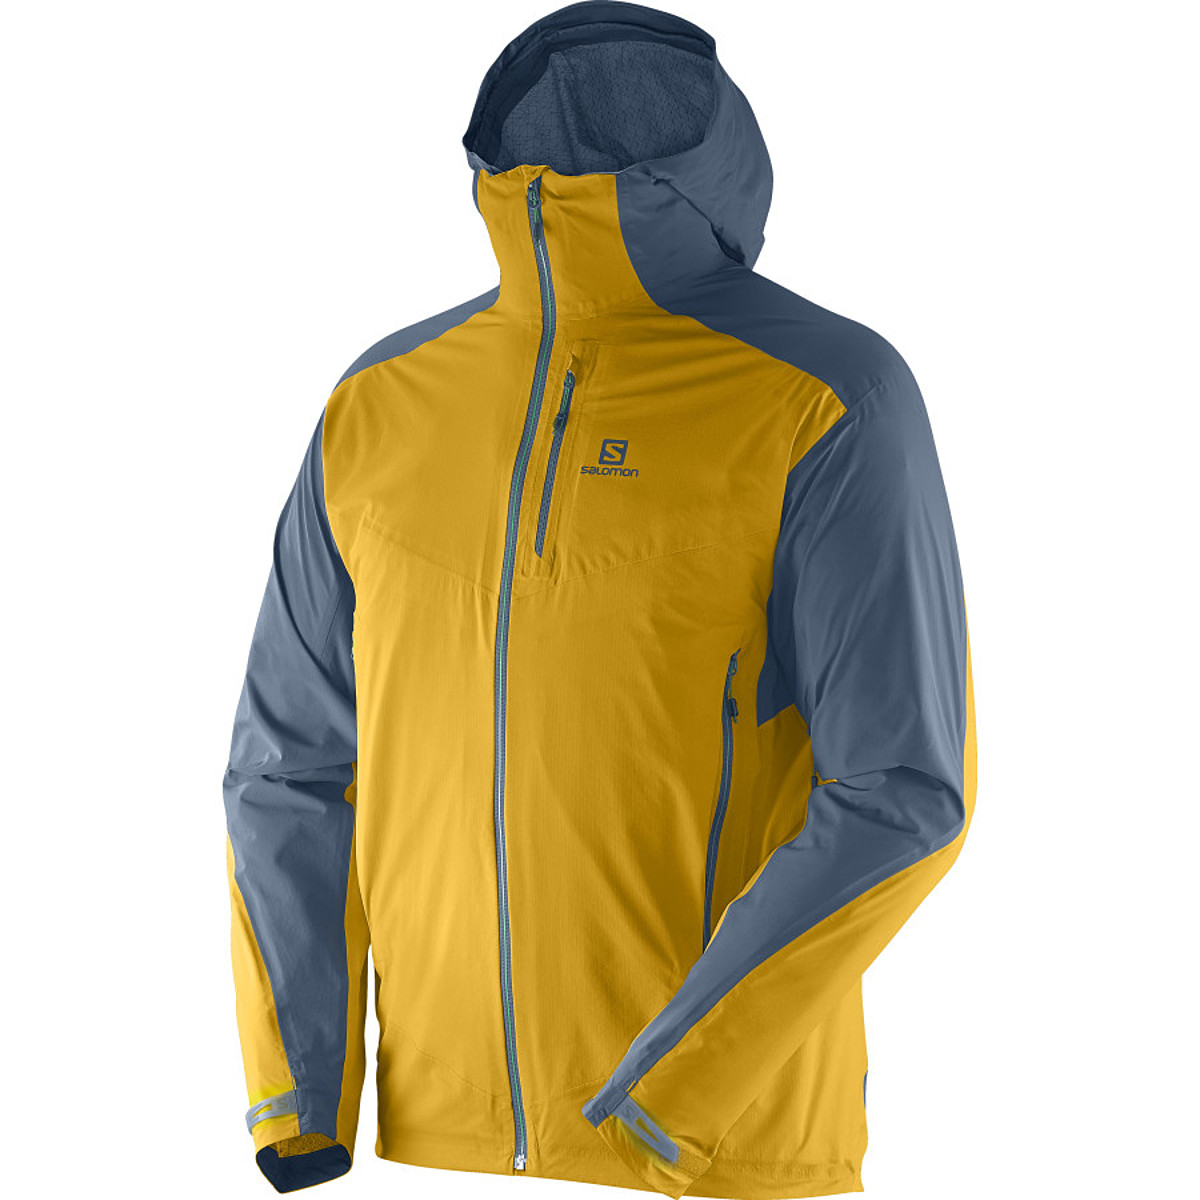 Salomon Minim 2.5L Jacket